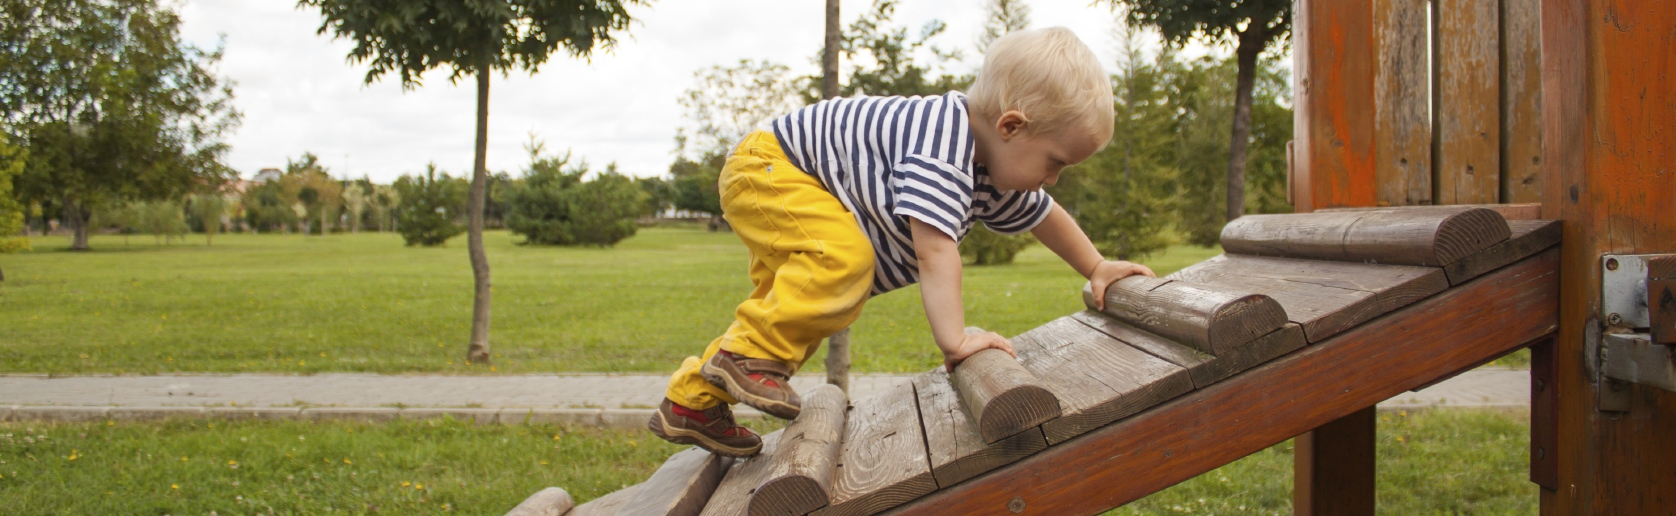 Your Child's Movements and Independence}